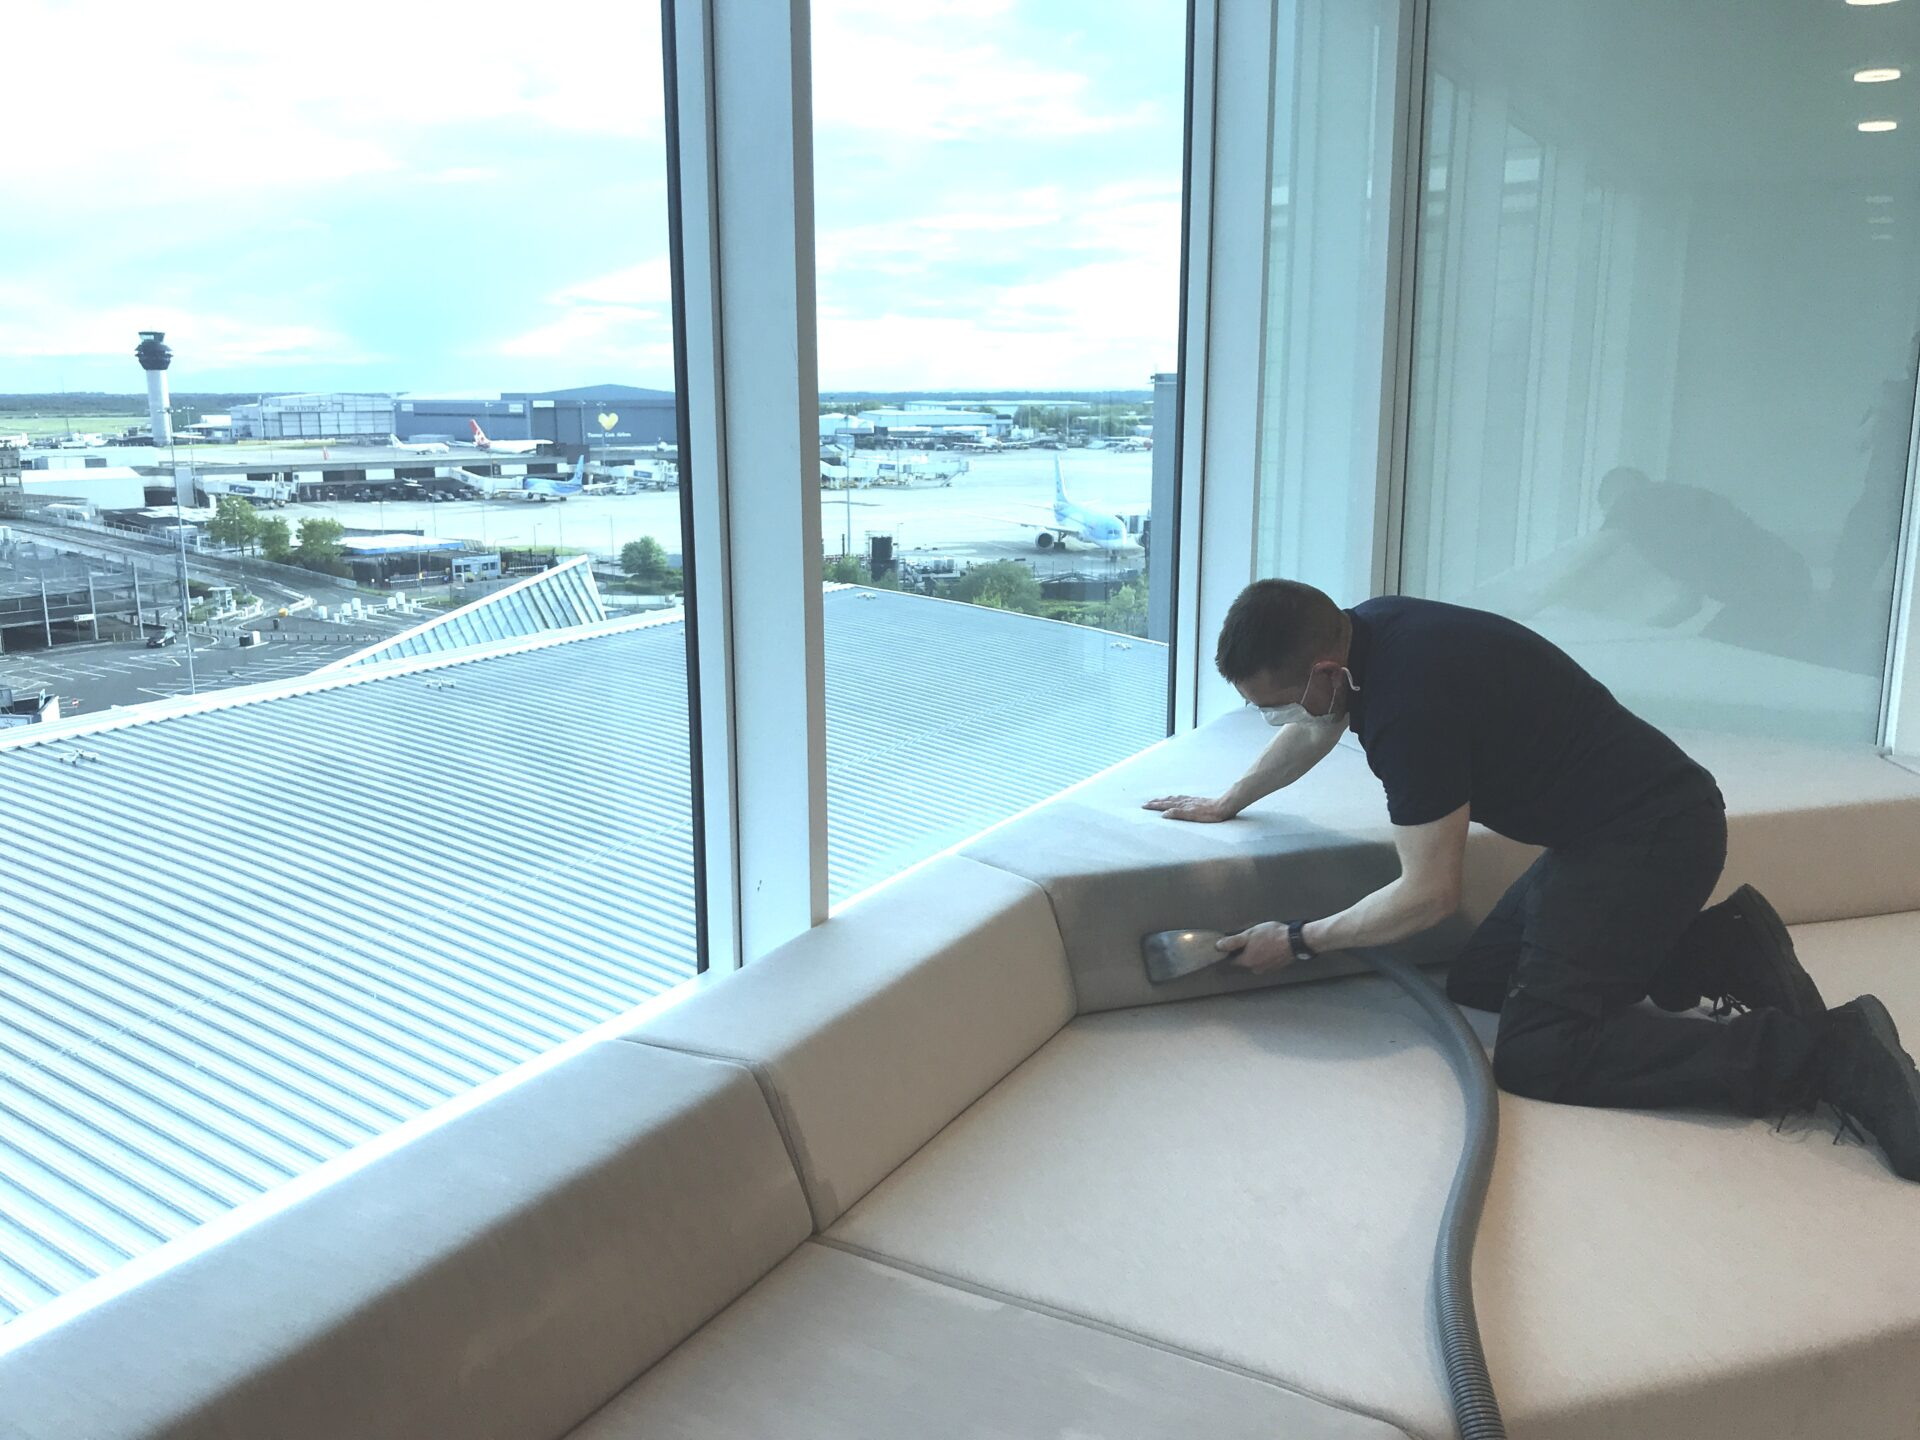 Commercial upholstery cleaning of an Airport lounge